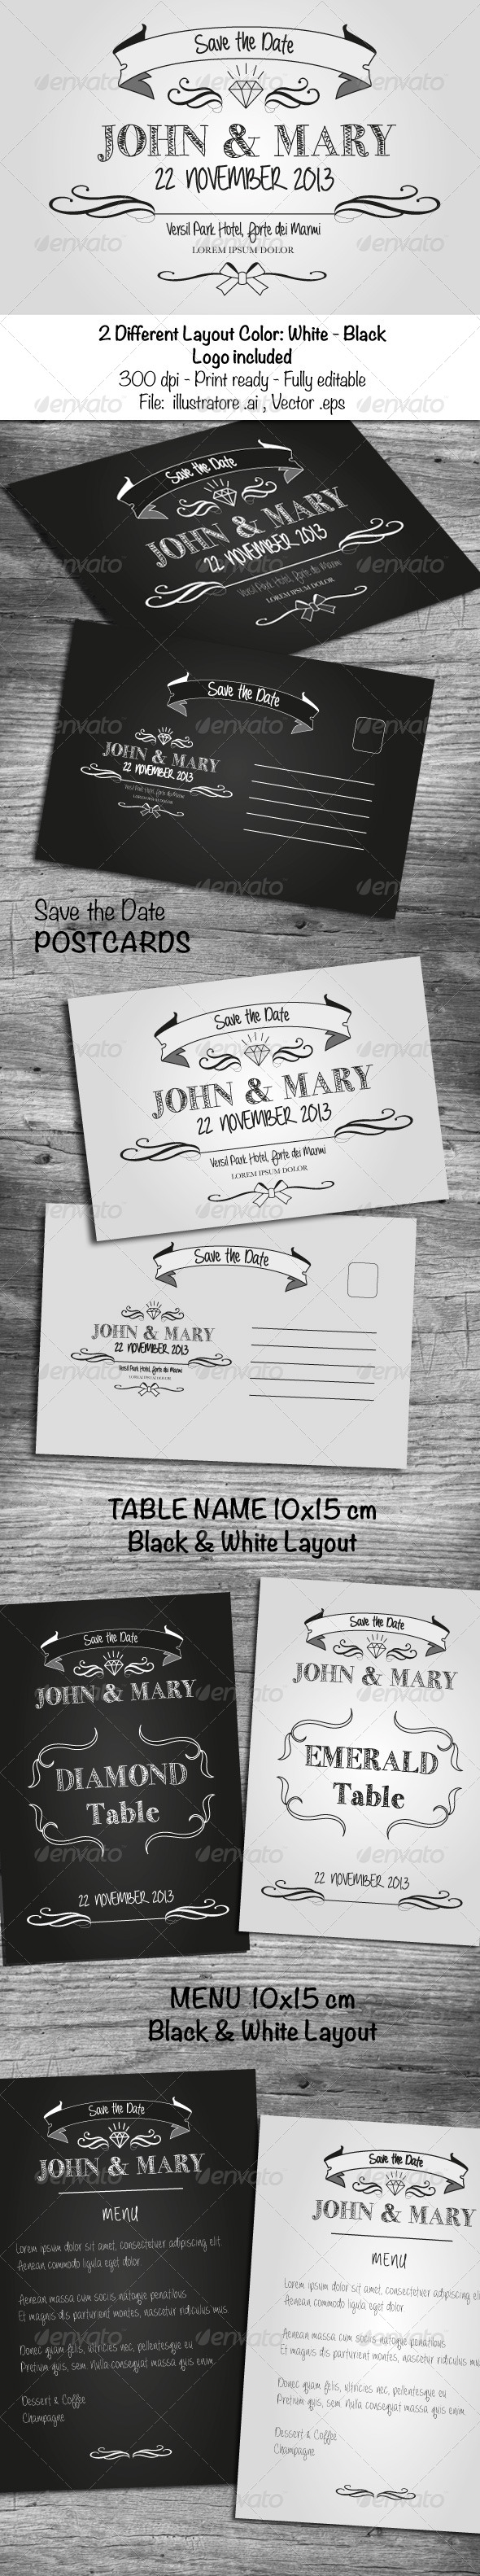 Black & White Wedding Cards - Cards & Invites Print Templates